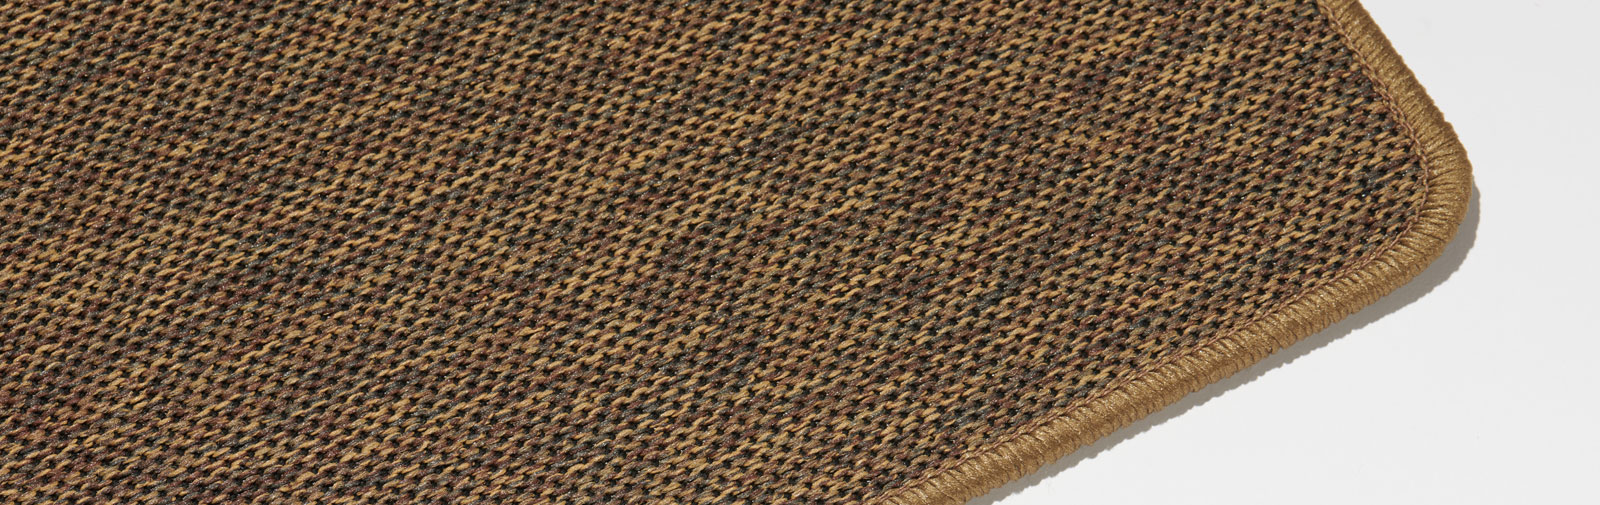 church carpet Wave color code 202 color gold-beige